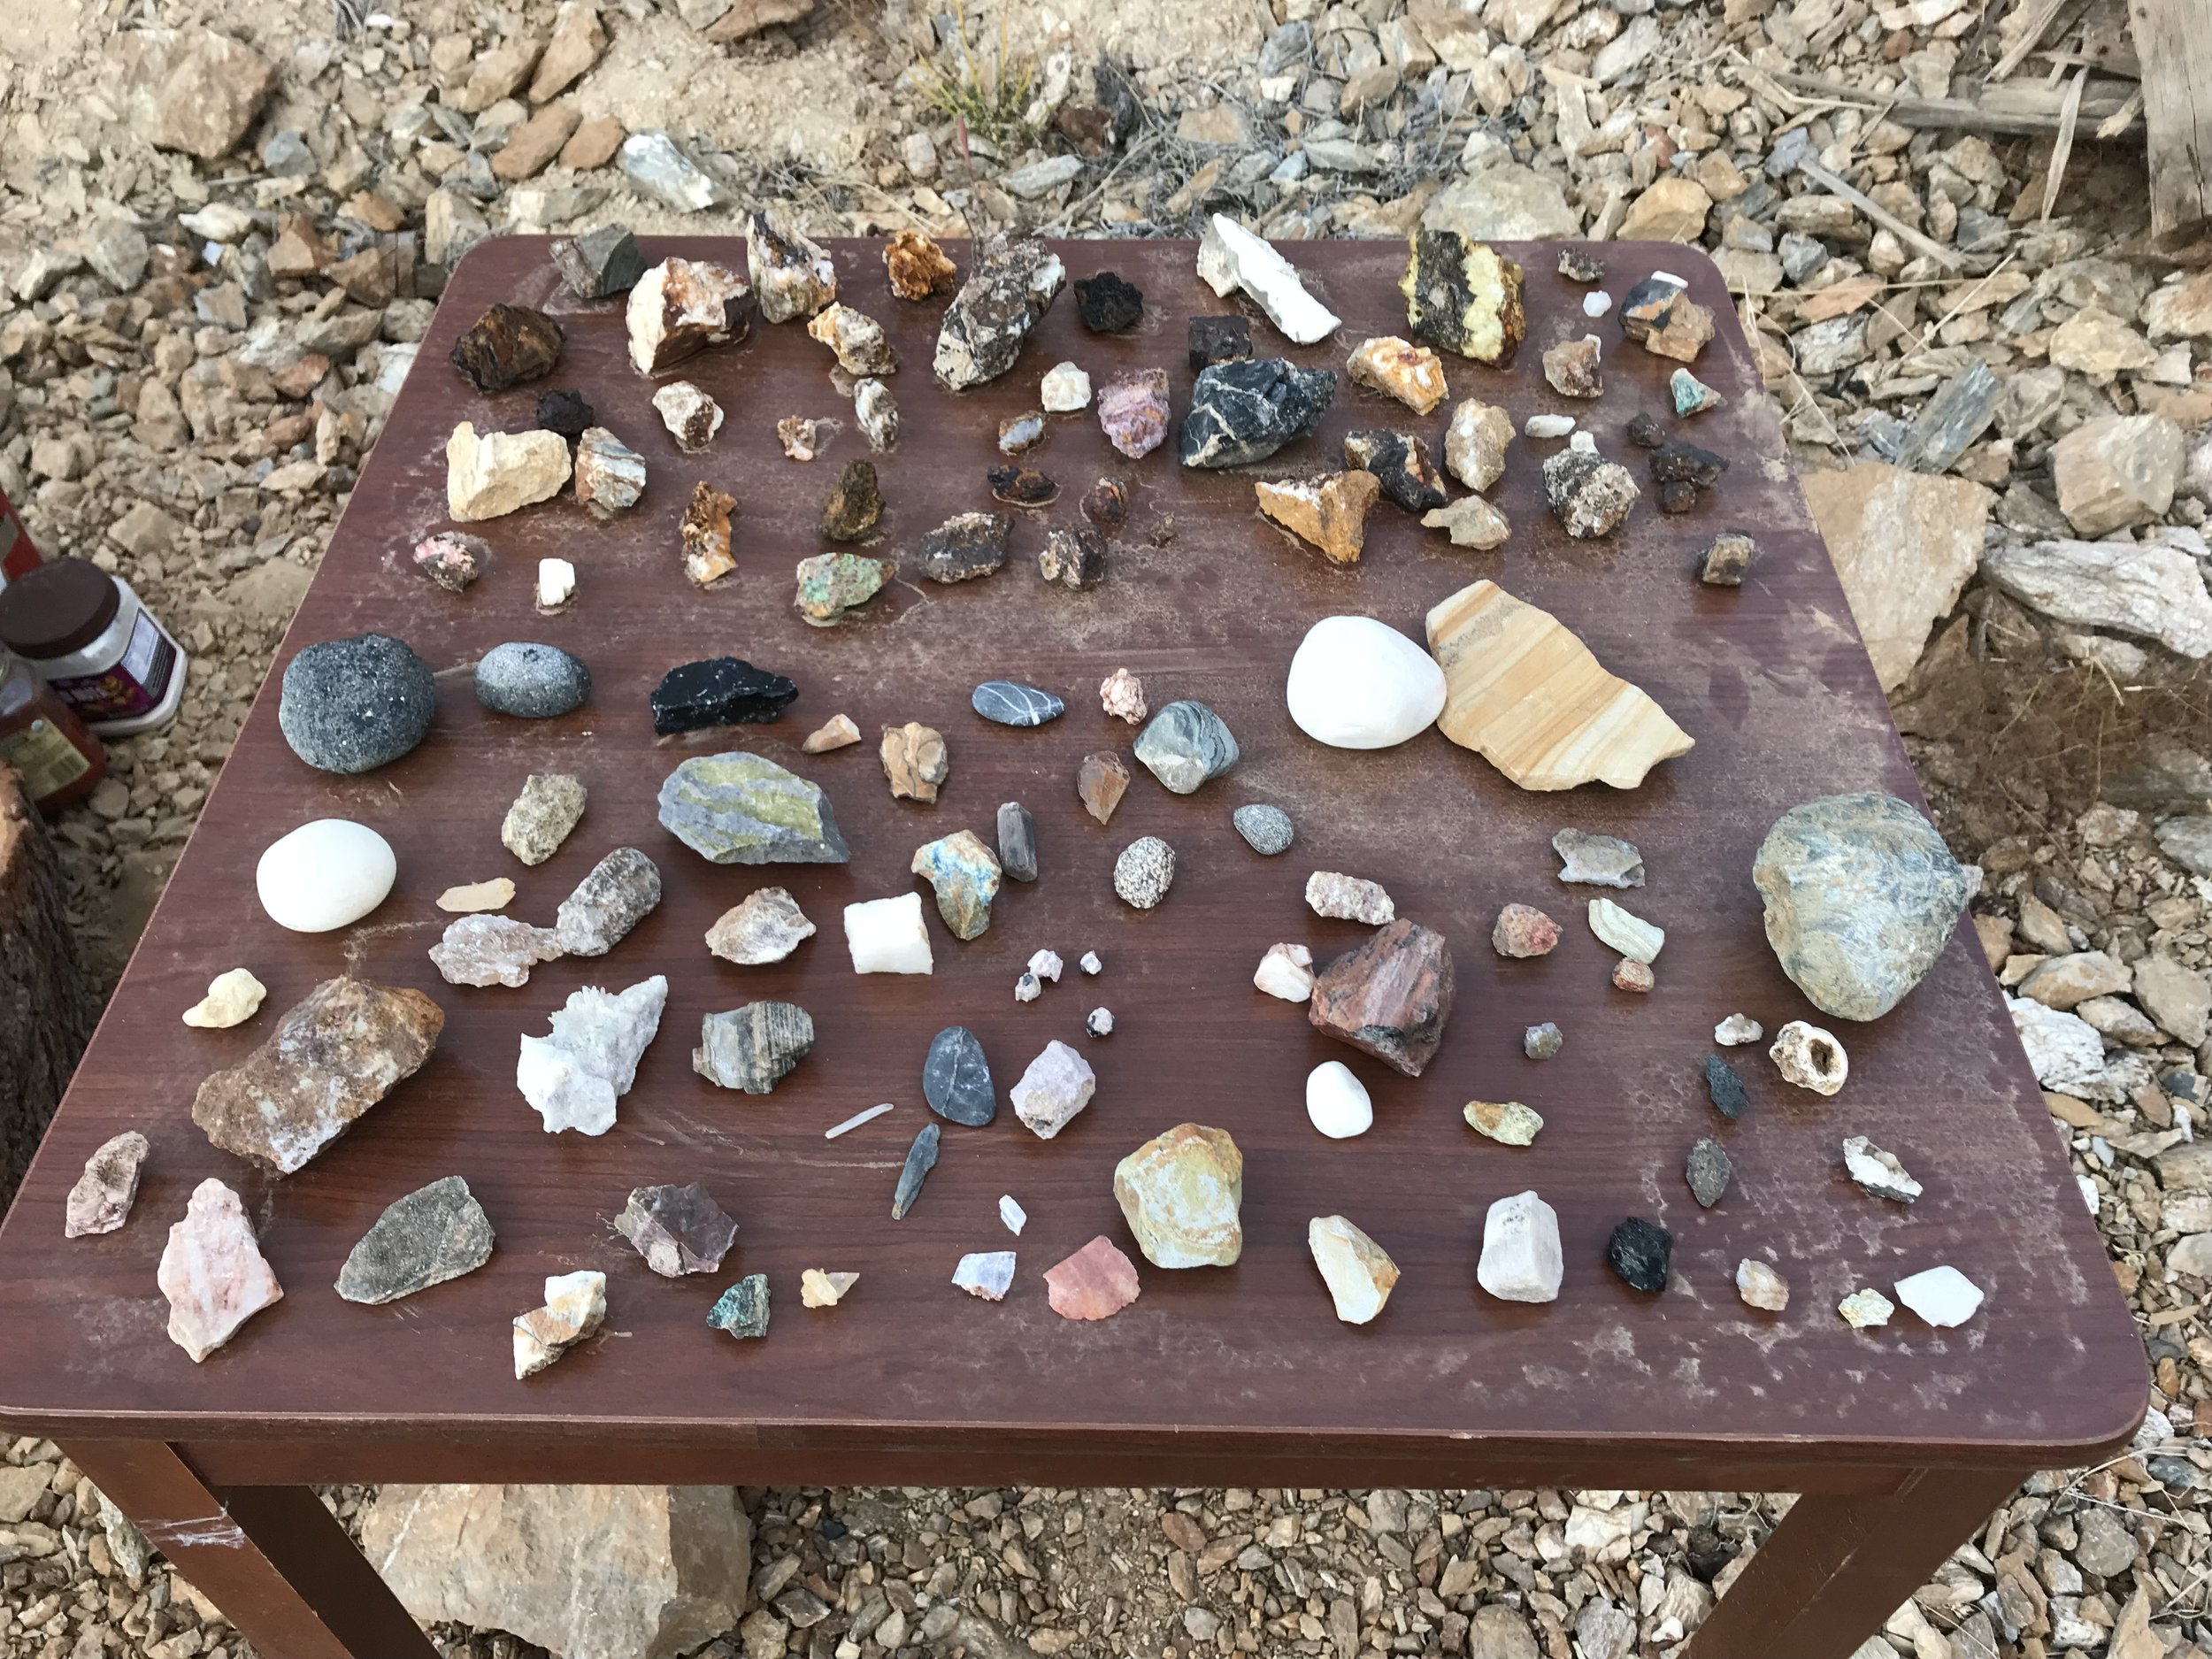 If you like cool rocks then find some and take them home with you